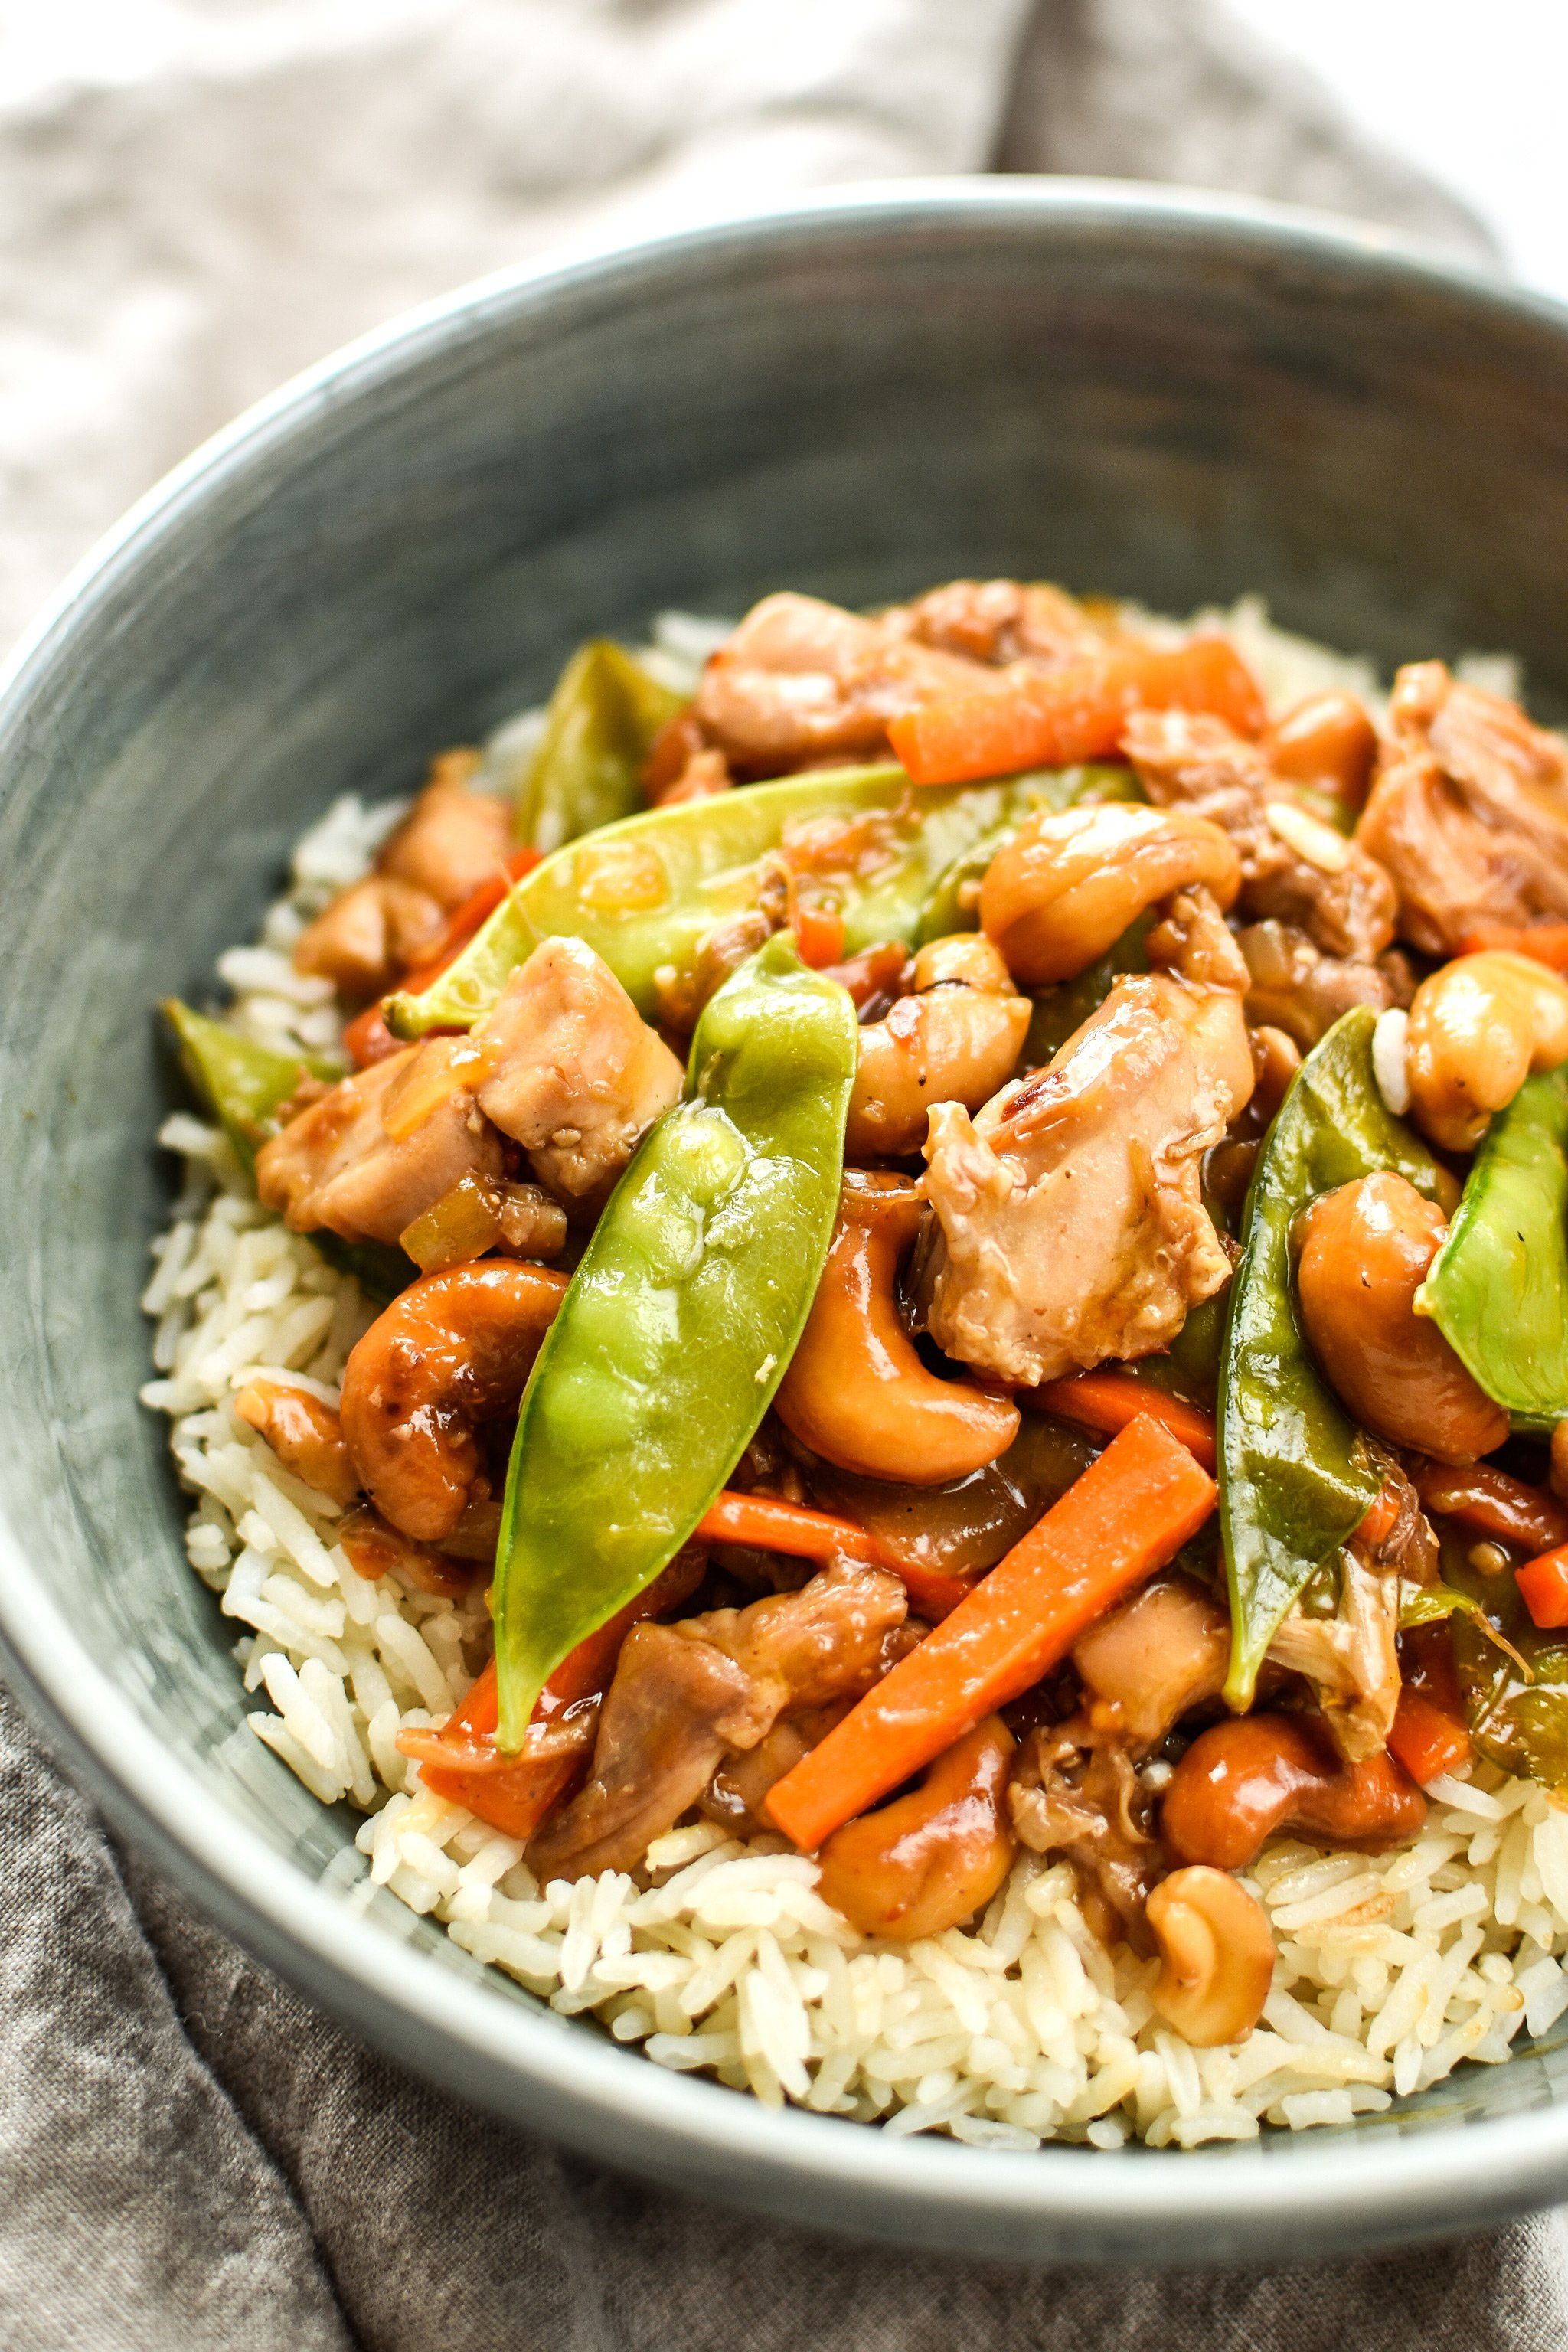 Easy Cashew Chicken Meal Prep - Toasted cashews, snow peas, carrots and juicy chicken in a garlicky cashew sauce - pair with rice for a super simple take-out style meal prep! - ProjectMealPlan.com